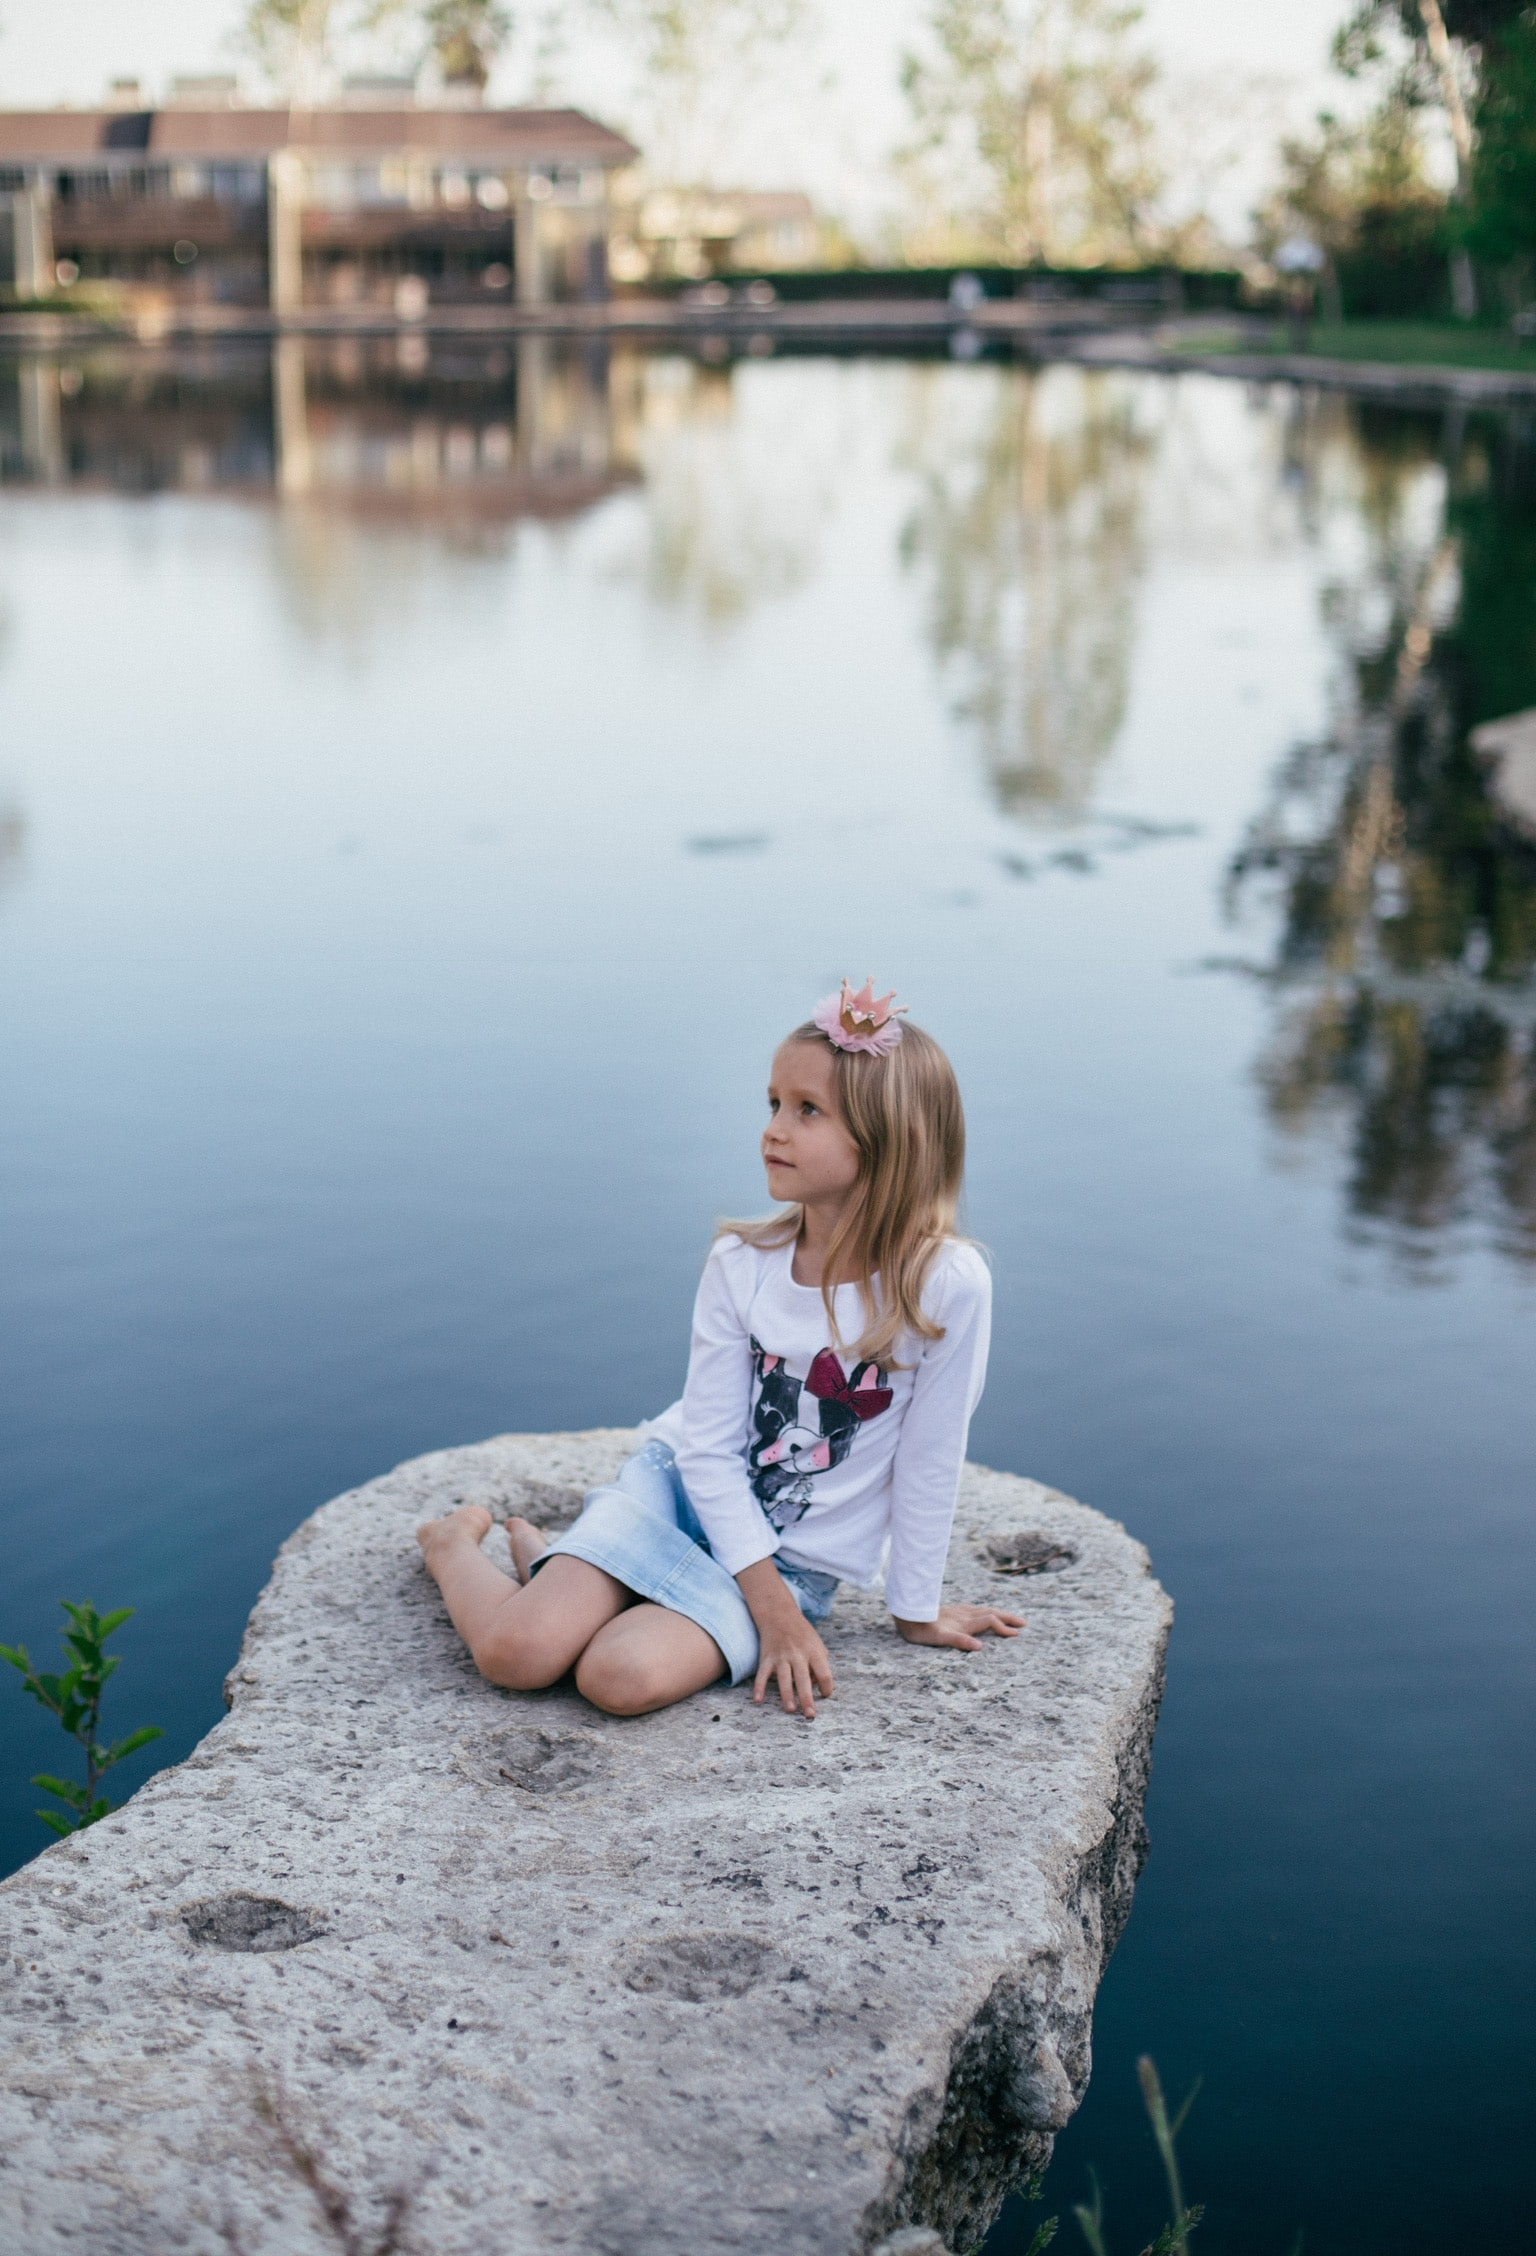 toddler girl sitting on gray stone beside body of water at daytime